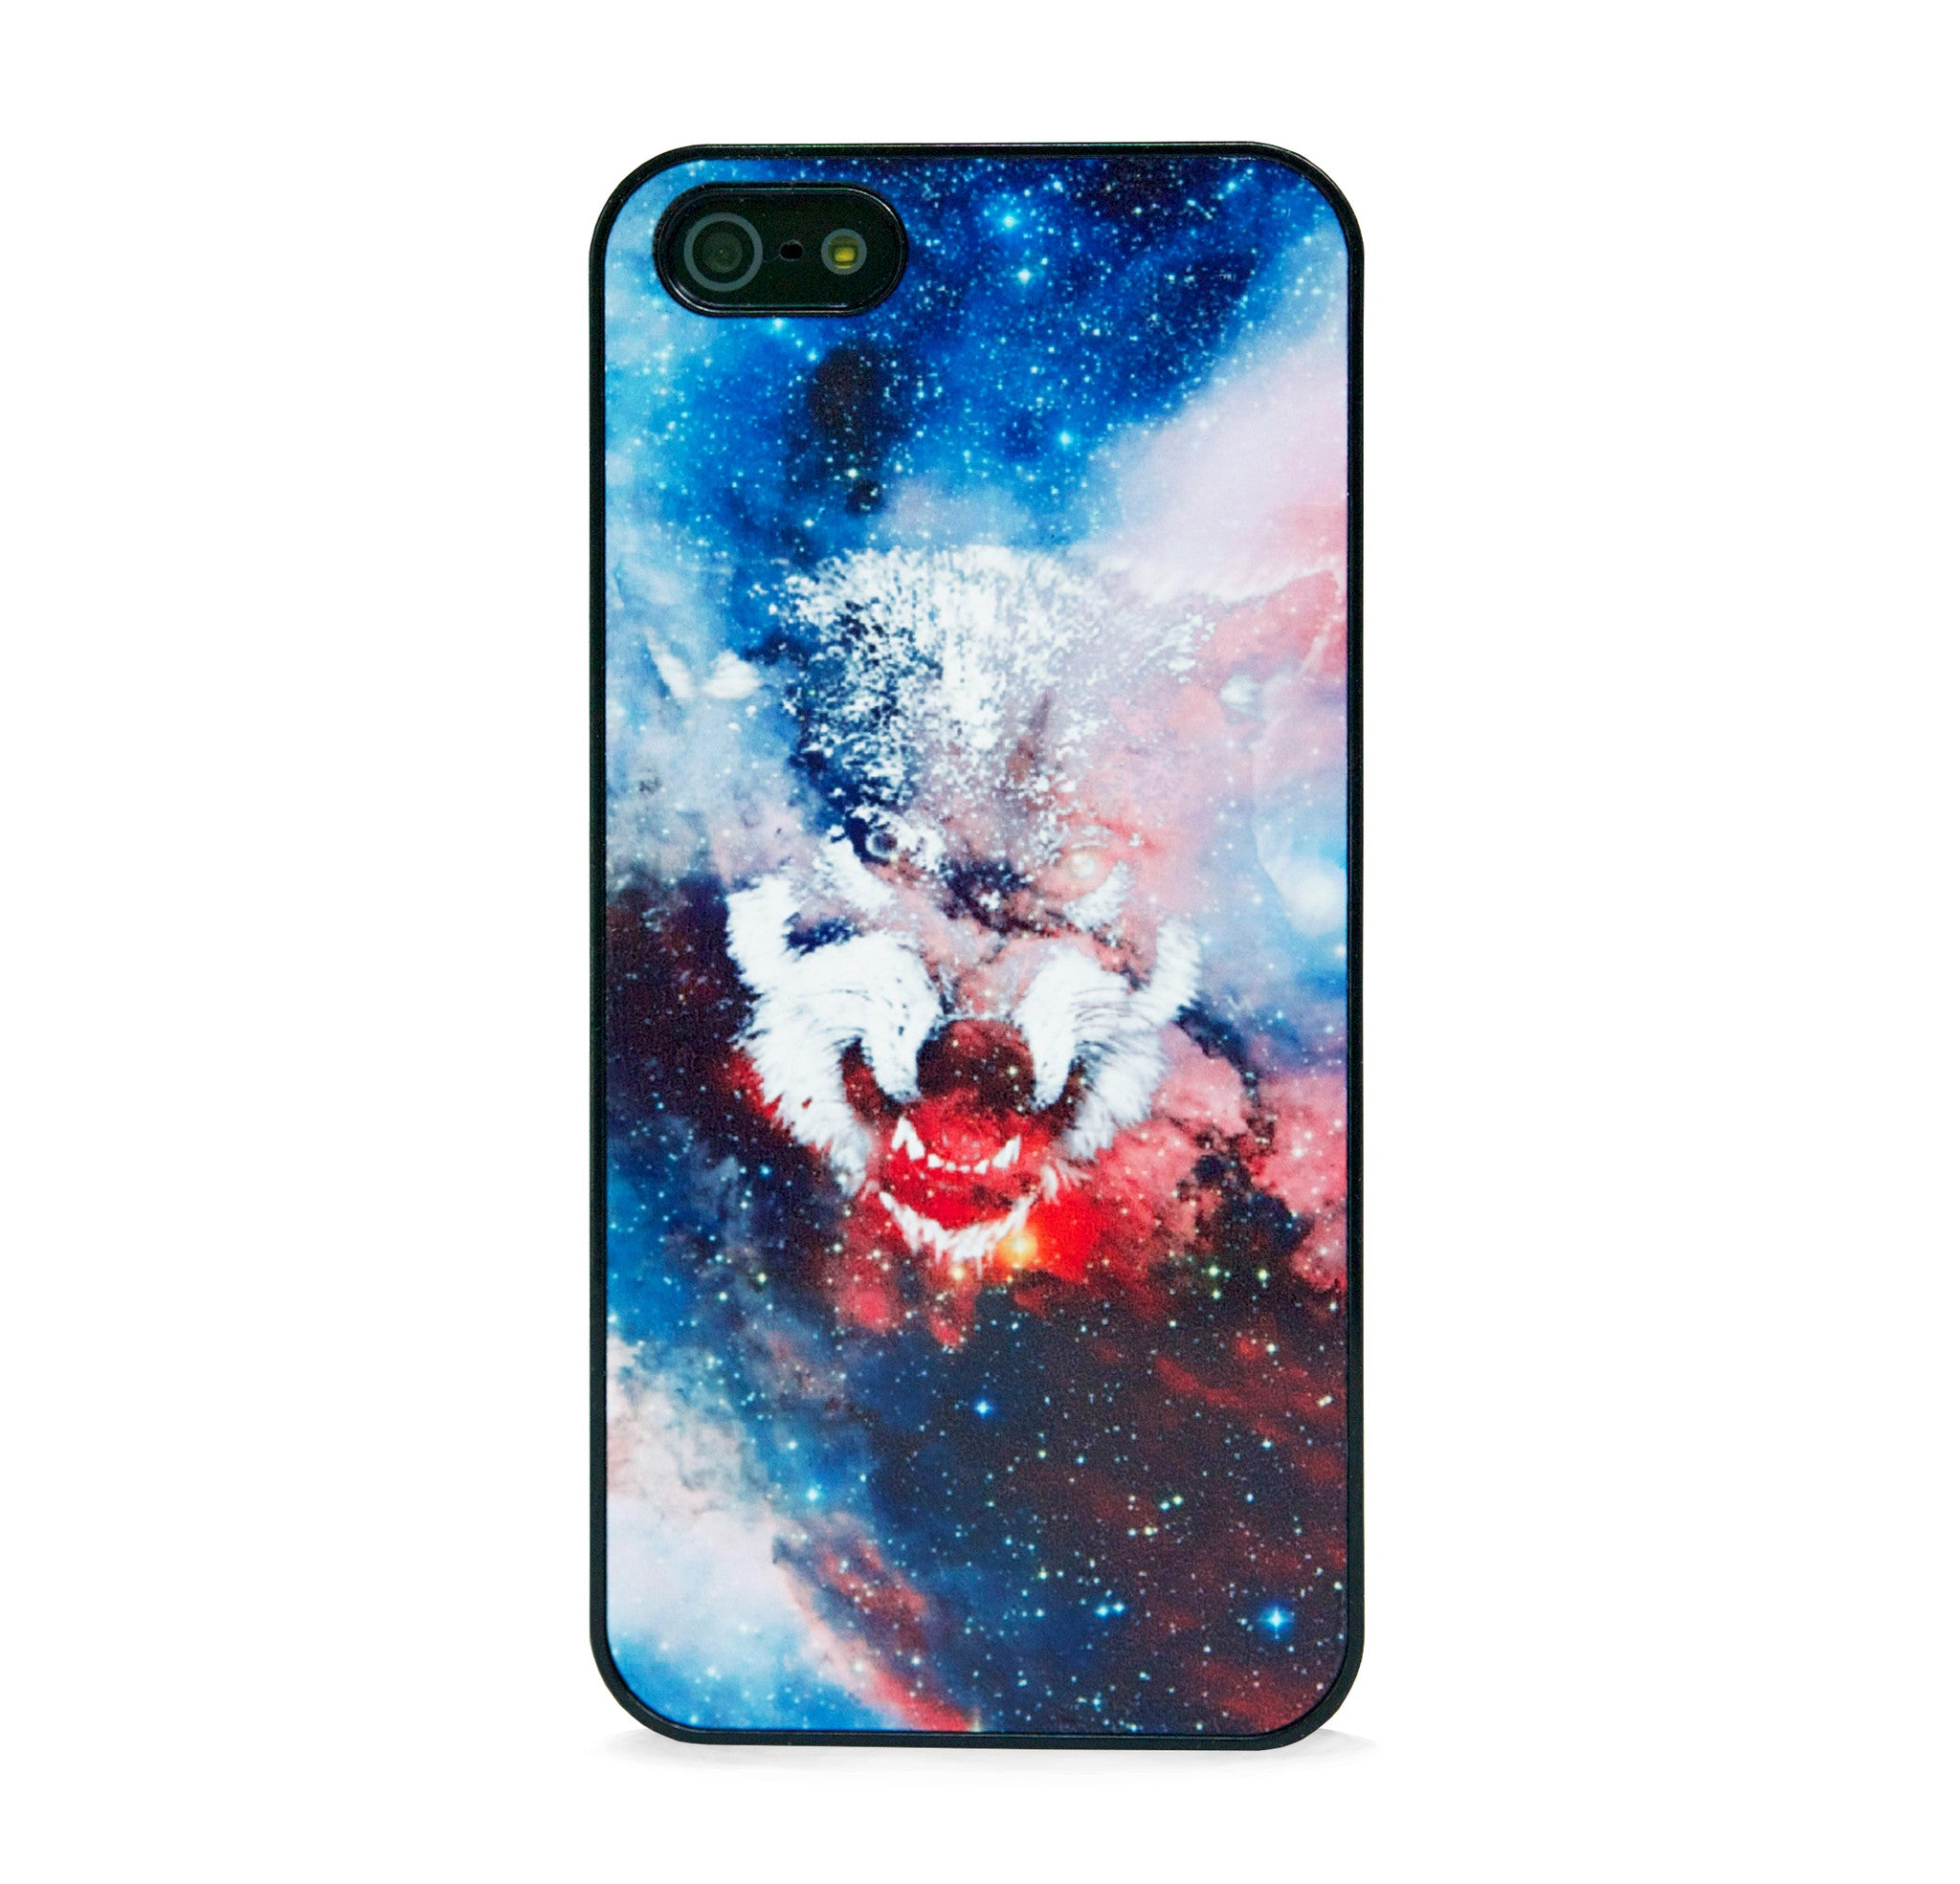 WILD WOLF IN SPACE IPHONE 5/5S CASE